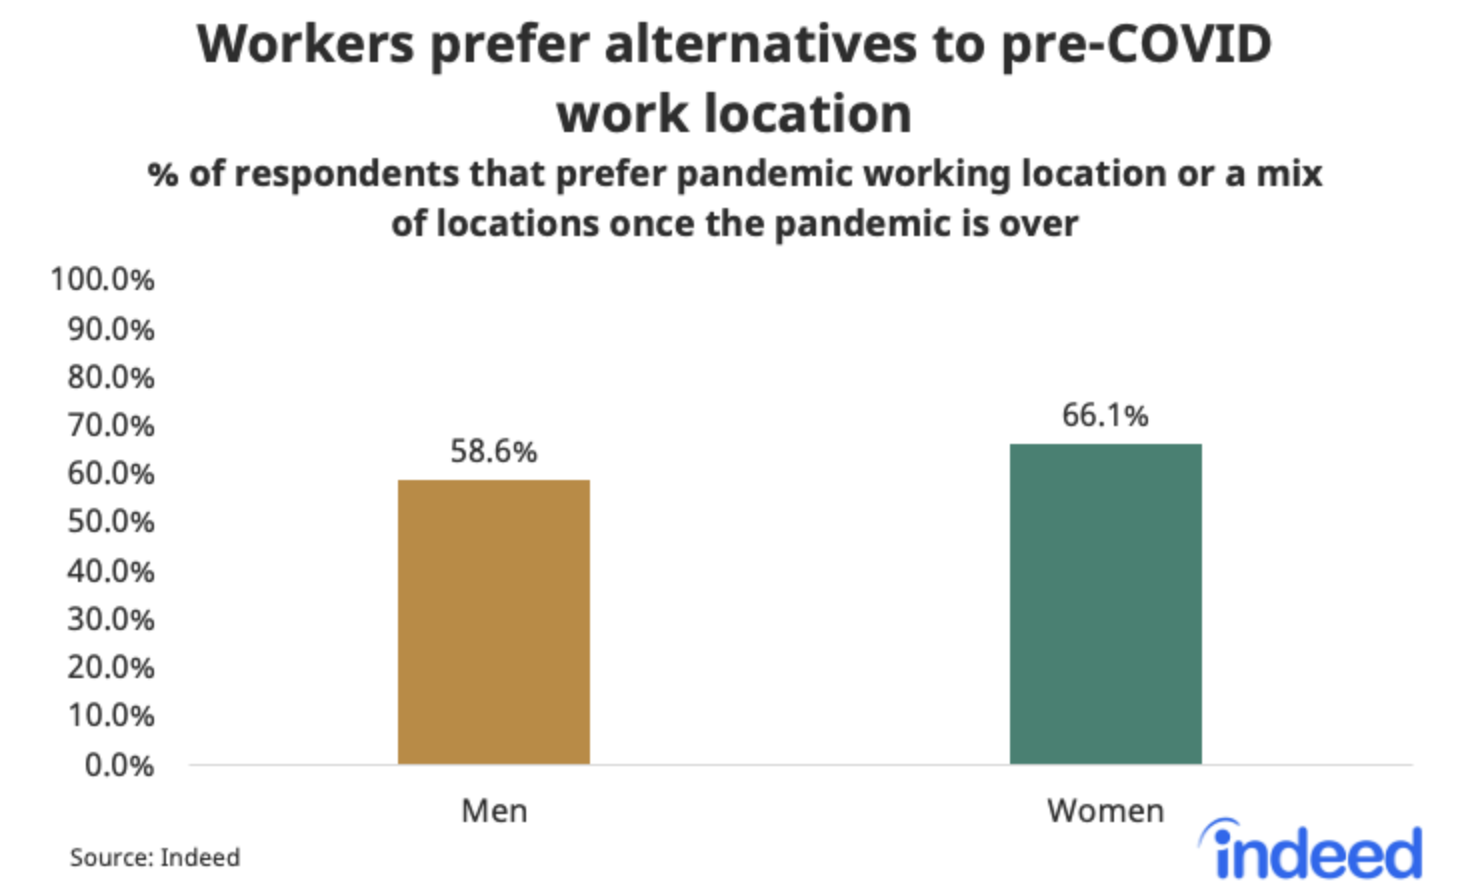 Bar graph surveying men and women showing workers prefer alternatives to pre-COVID work location